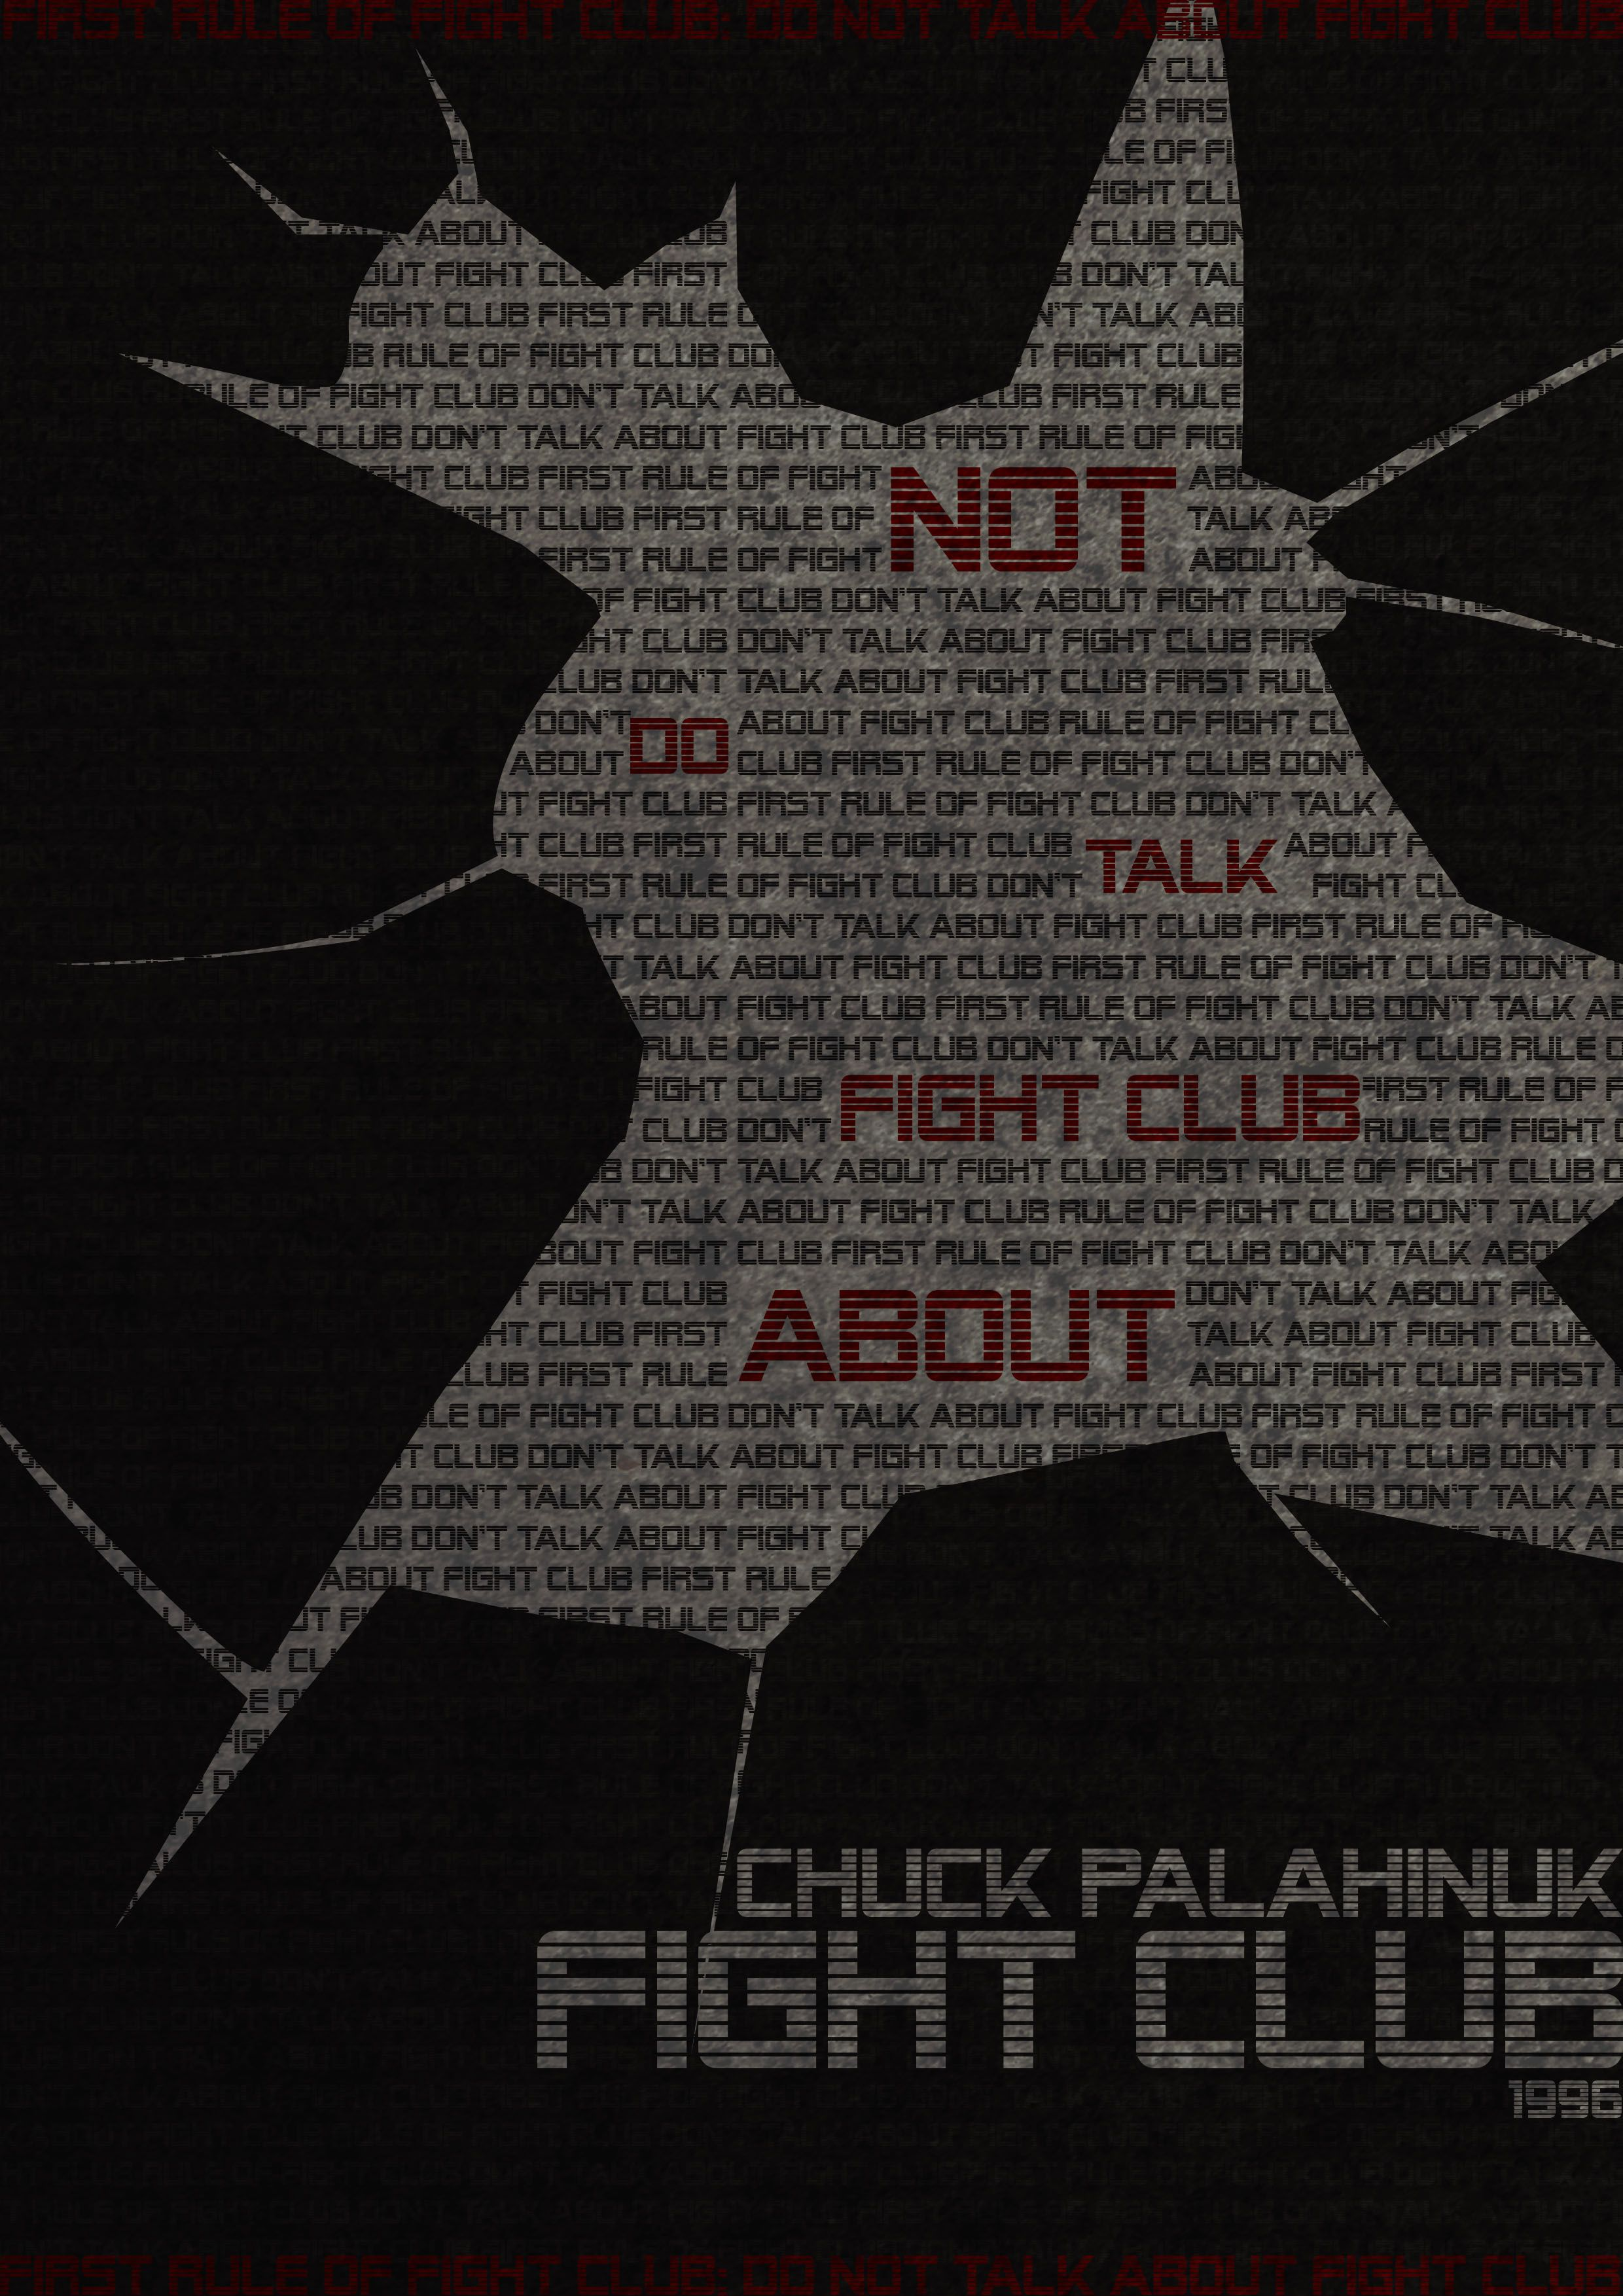 First rule is... Fight club, My books, Fight